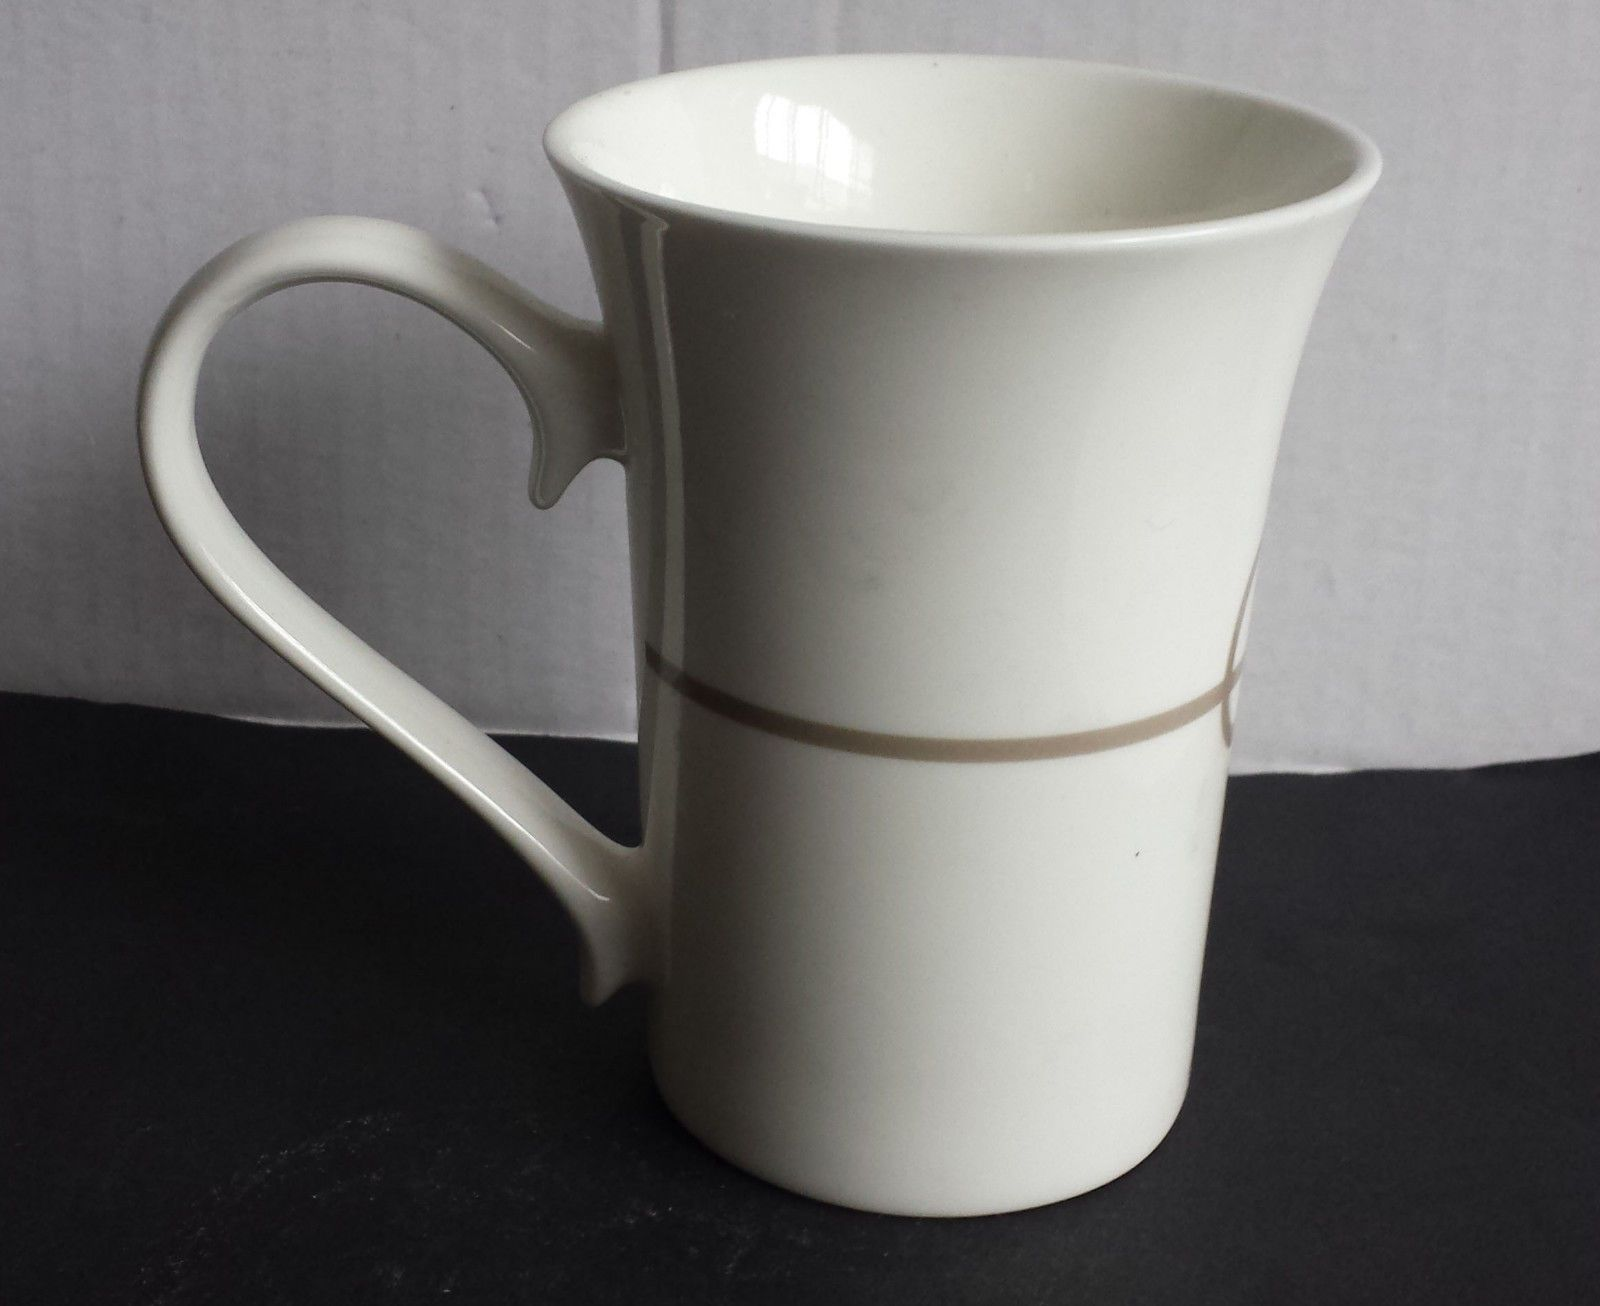 Elegant White Porcelain Coffee Mugs